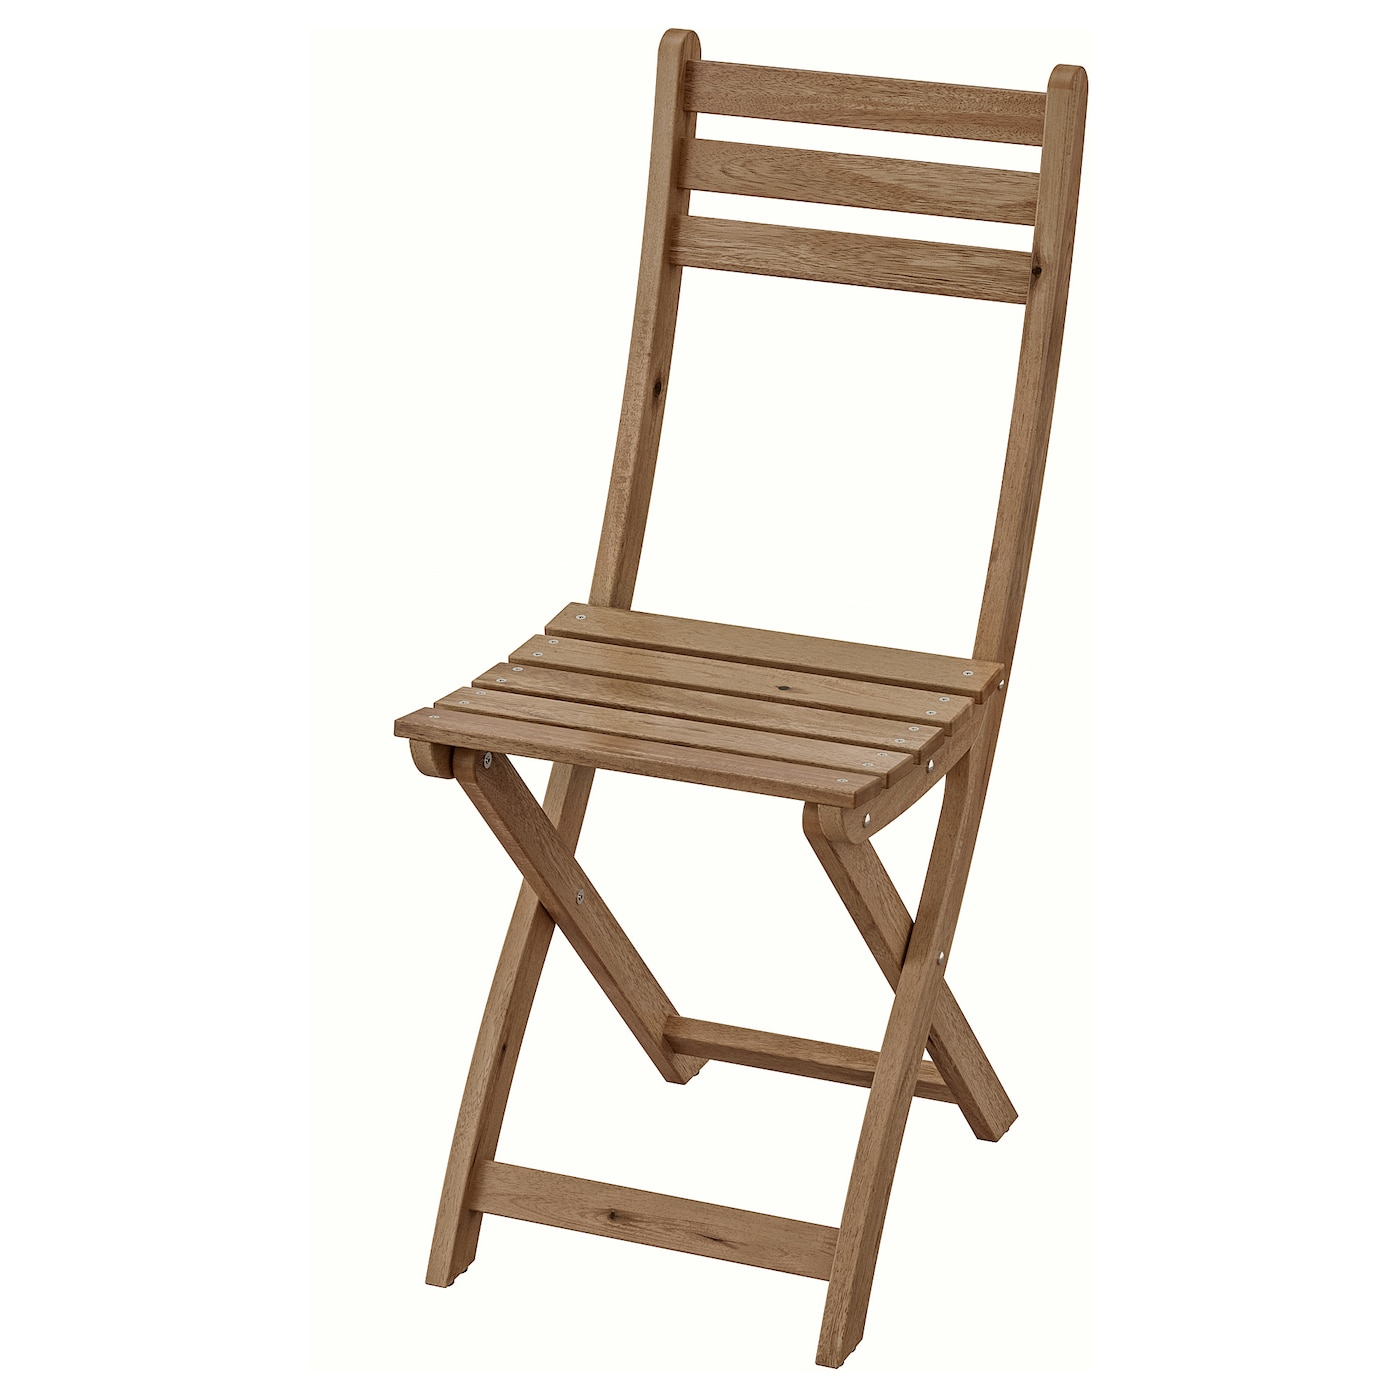 Askholmen Chair Outdoor Foldable Light Brown Stained Ikea